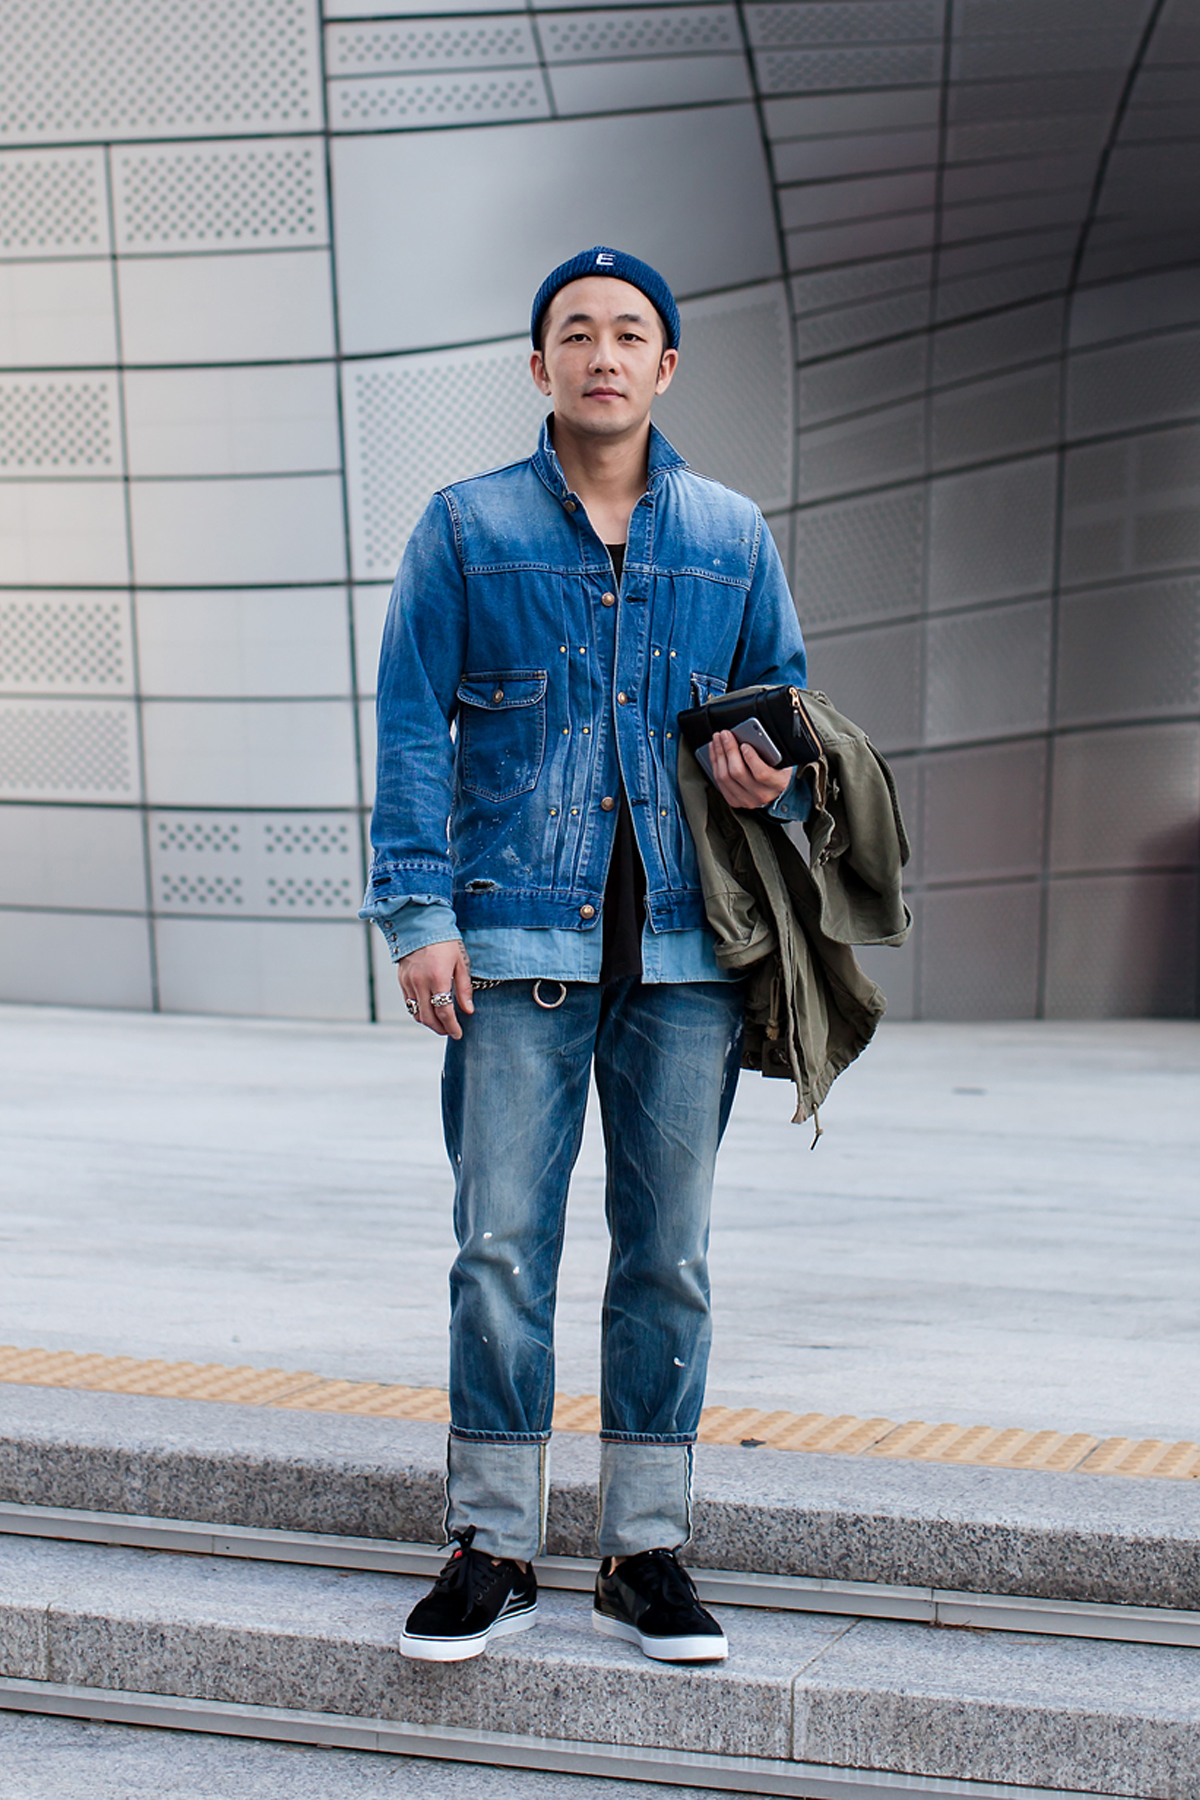 On the street… Lee Dongwon Seoul fashion week 2016 SS